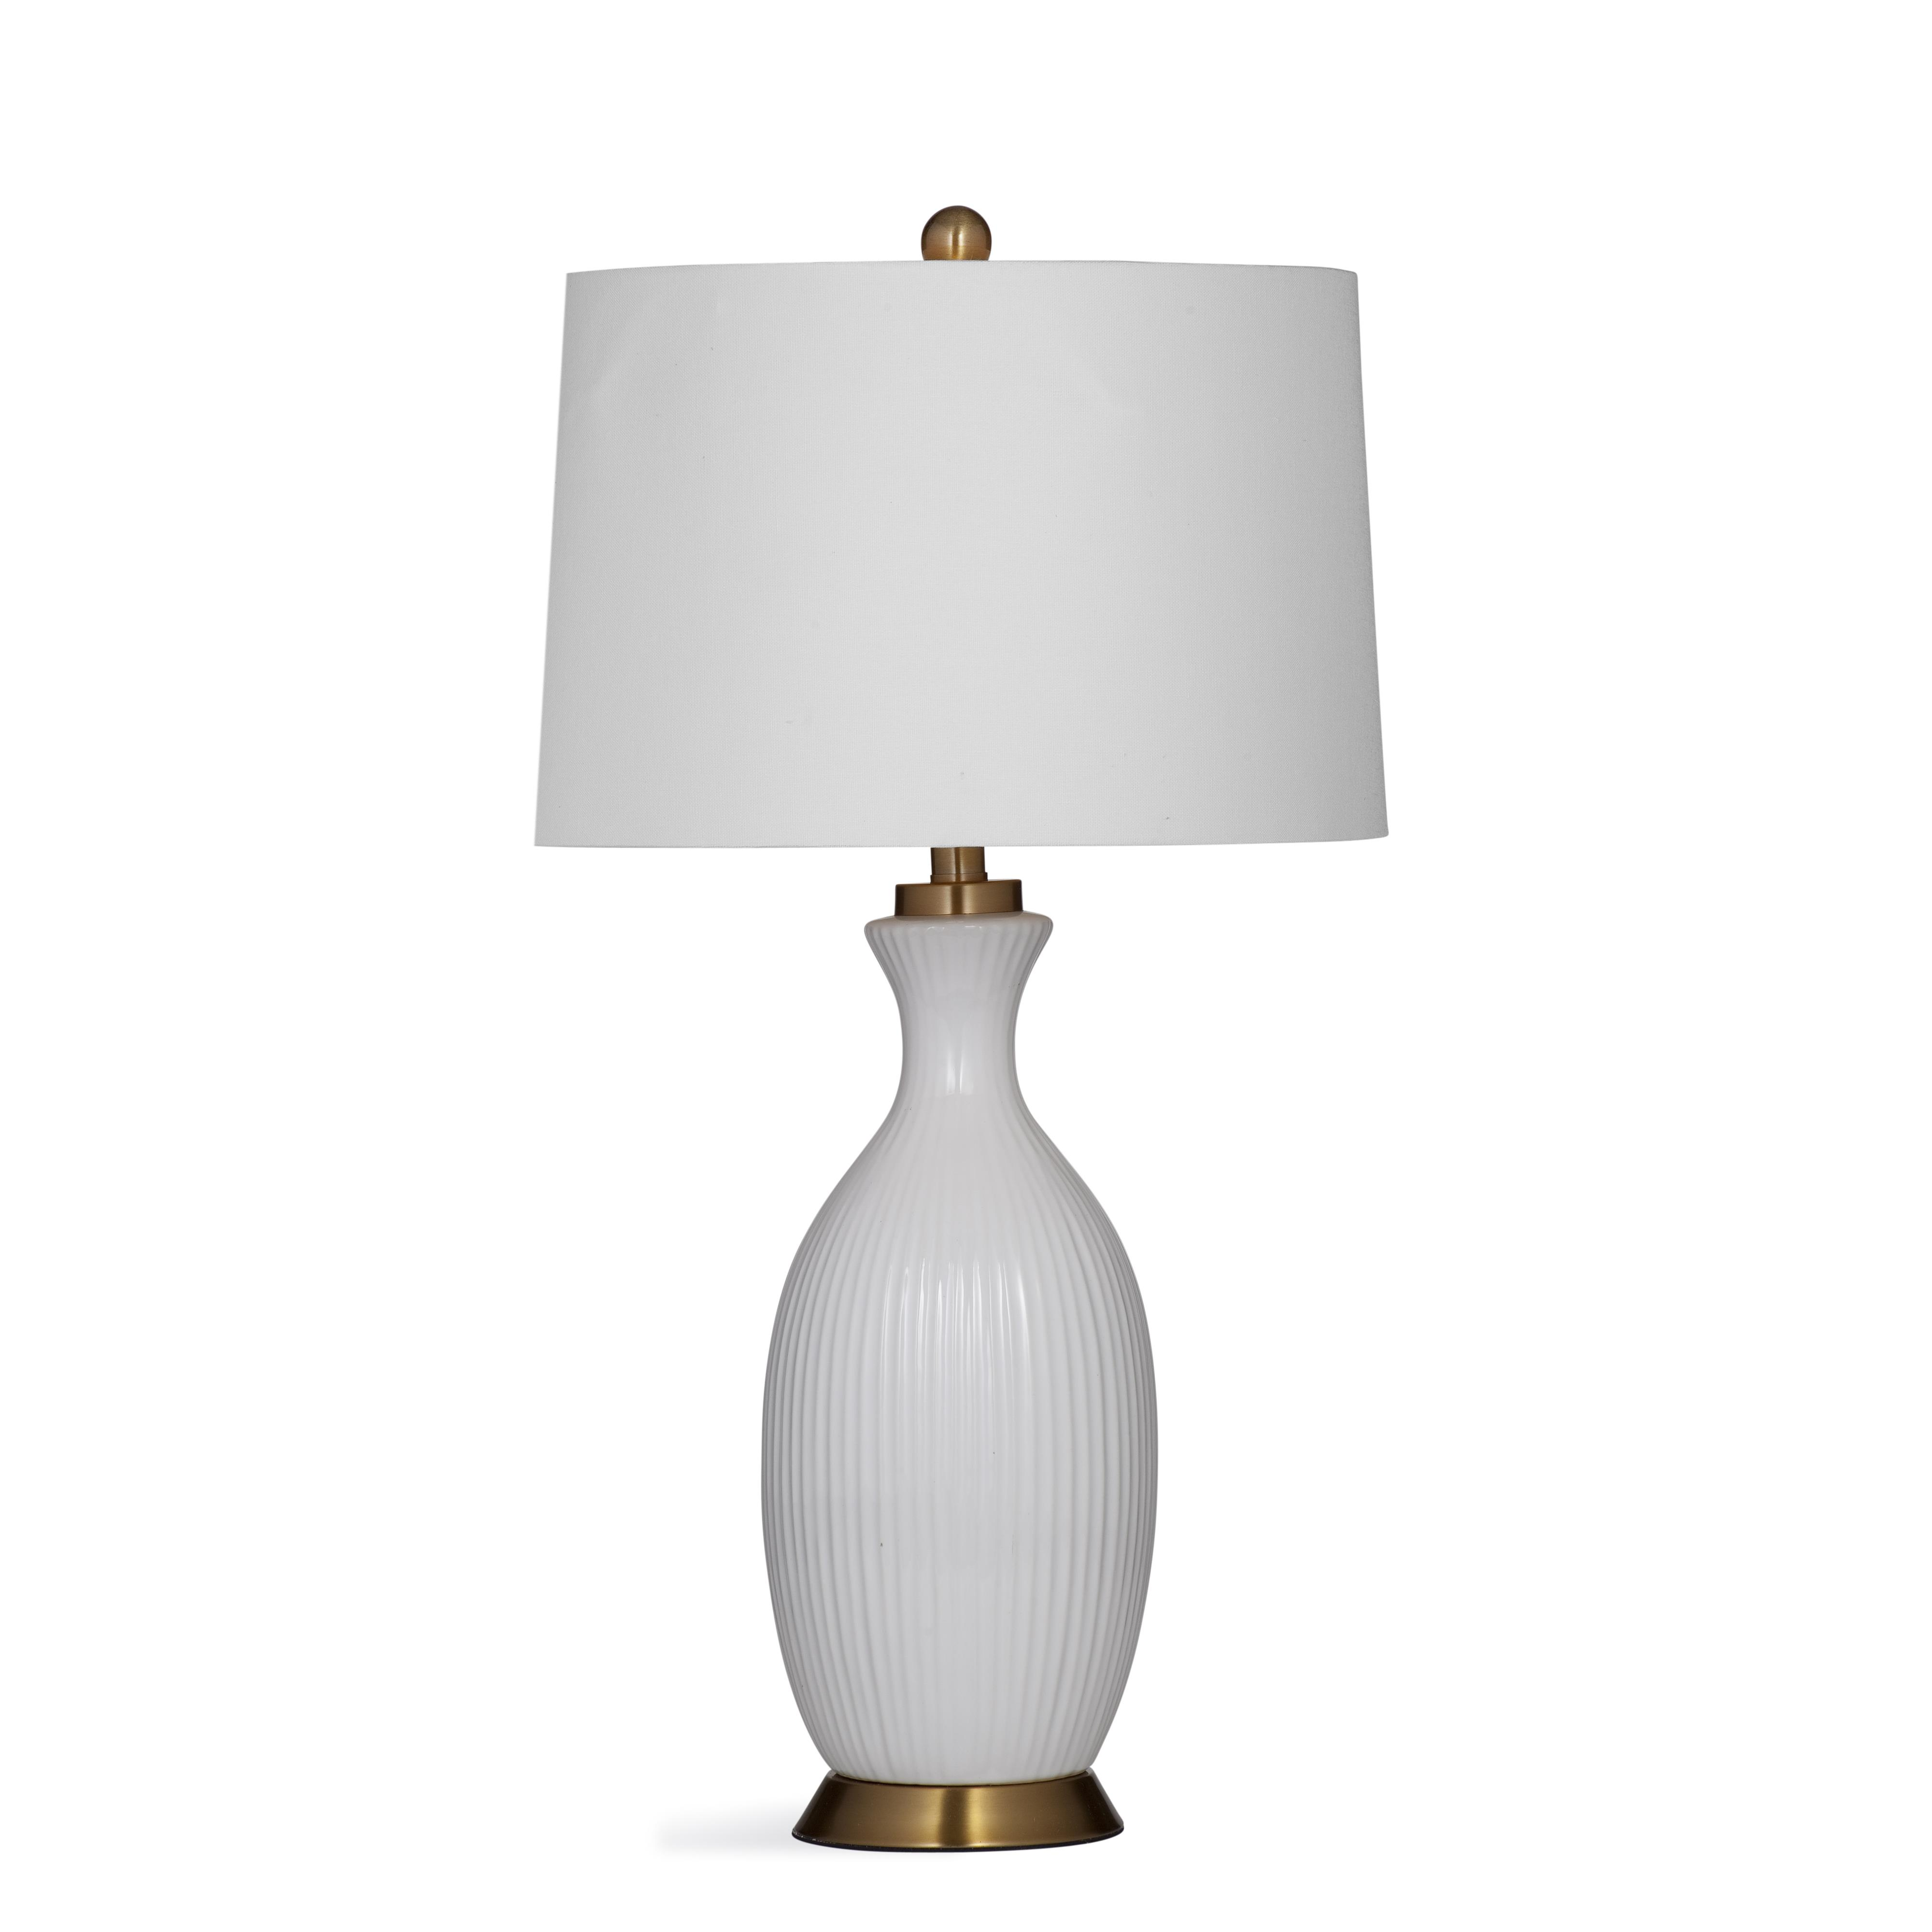 Old World Gadsen Table Lamp by Bassett Mirror at Alison Craig Home Furnishings